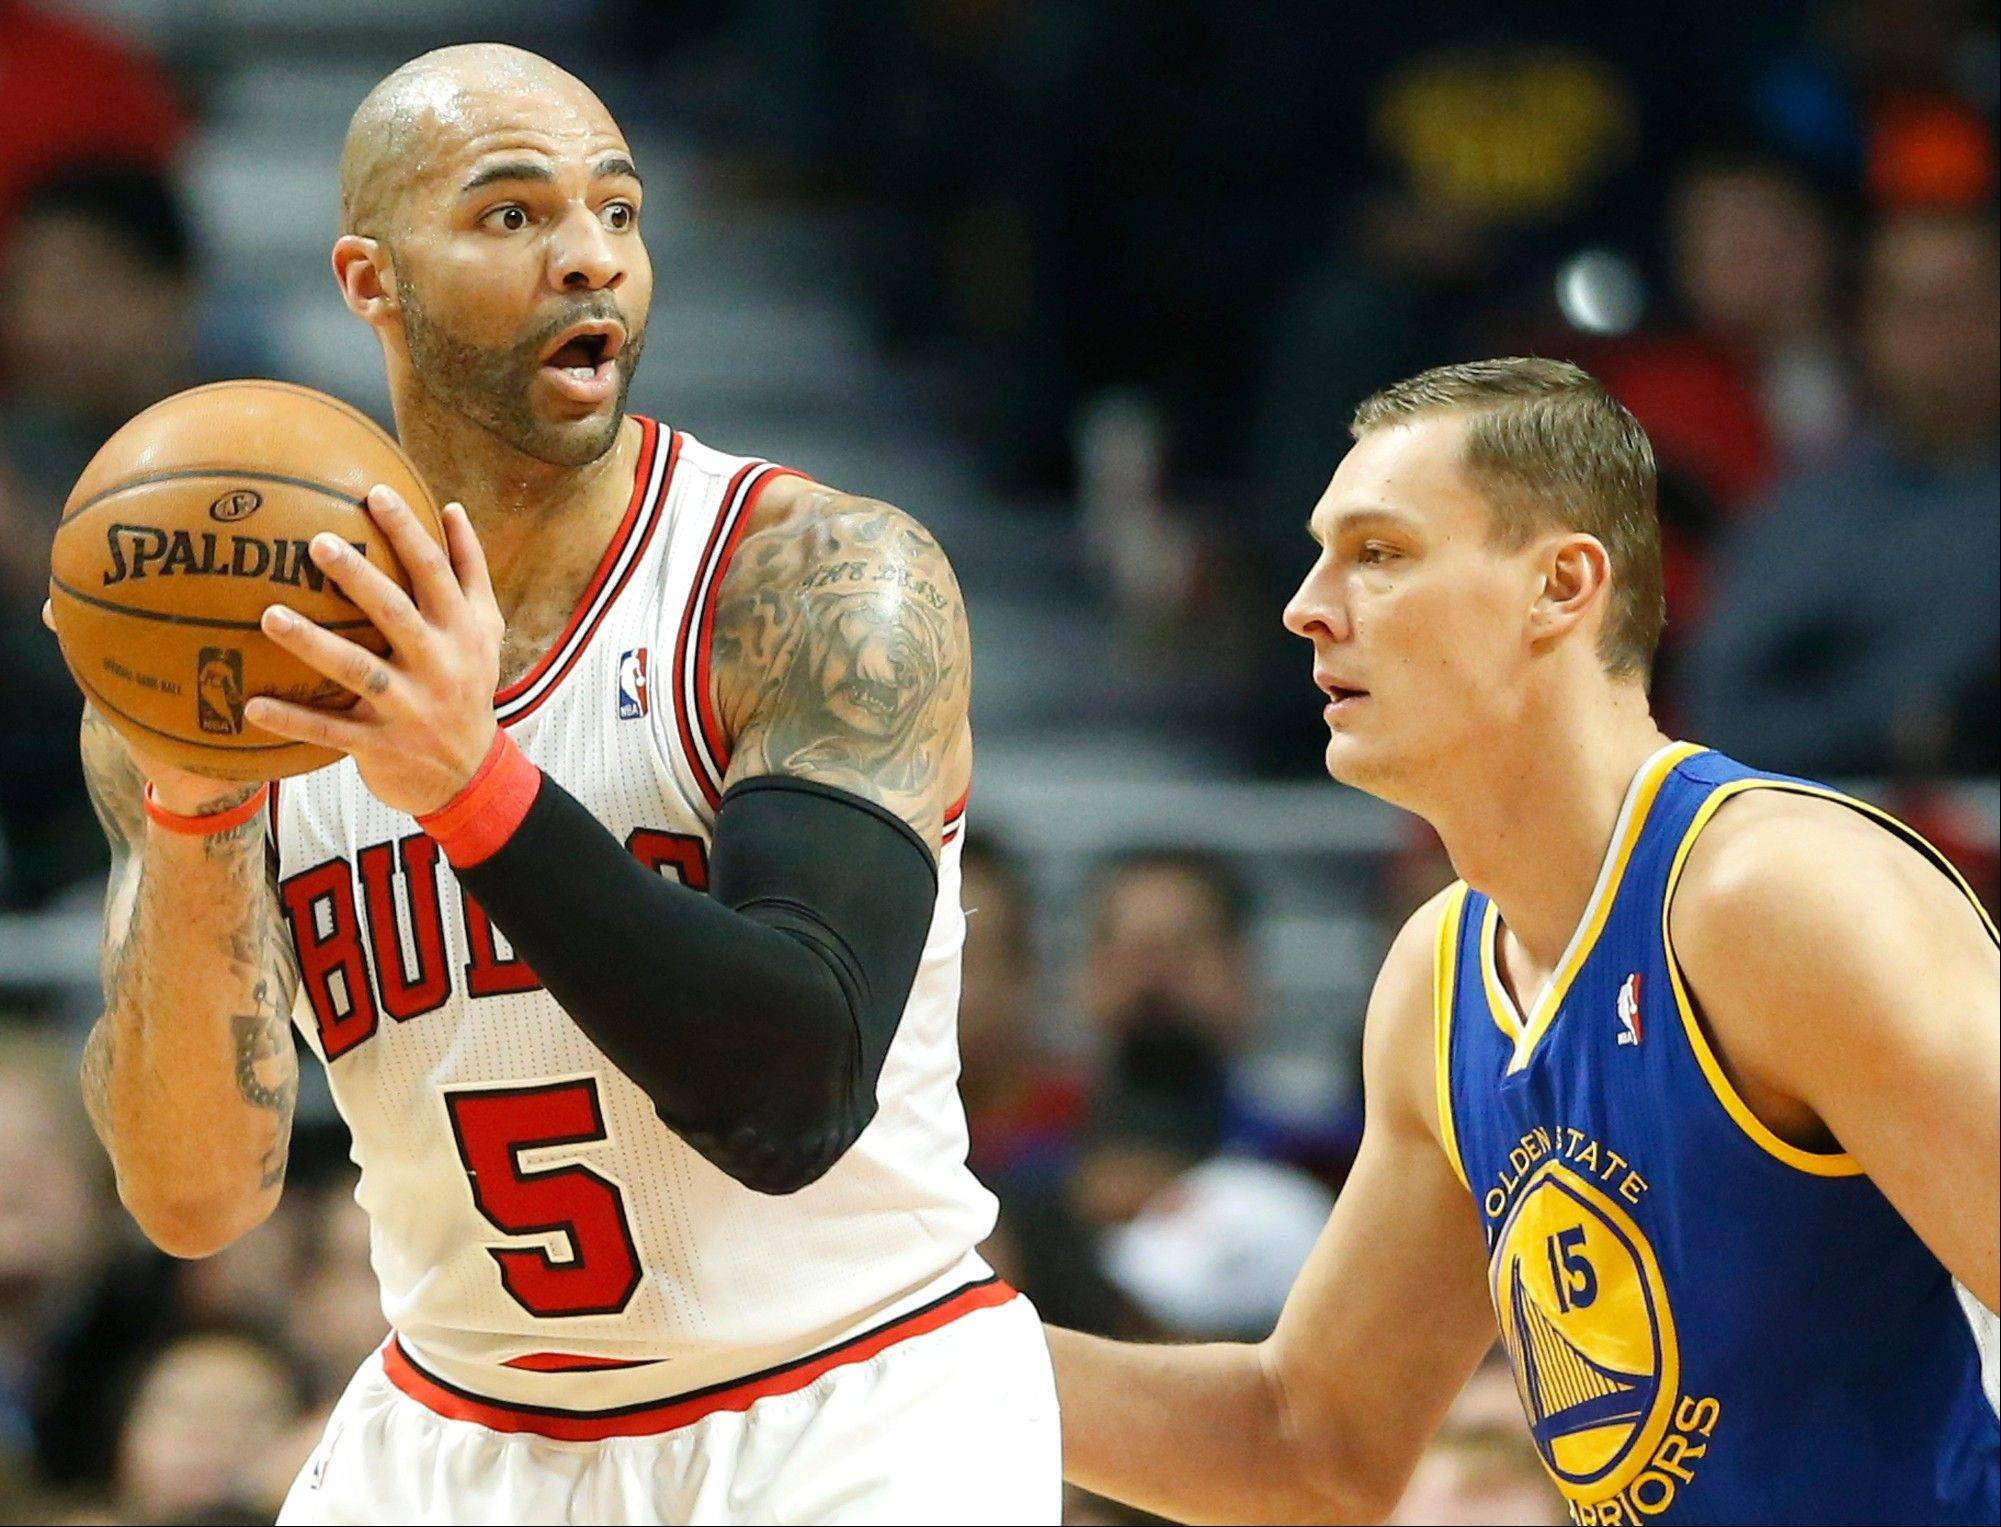 Carlos Boozer, left, looks to a pass against Golden State Warriors center Andris Biedrins, of Latvia, during the first half of an NBA basketball game in Chicago on Friday, Jan. 25, 2013. The Bulls won 103-87.